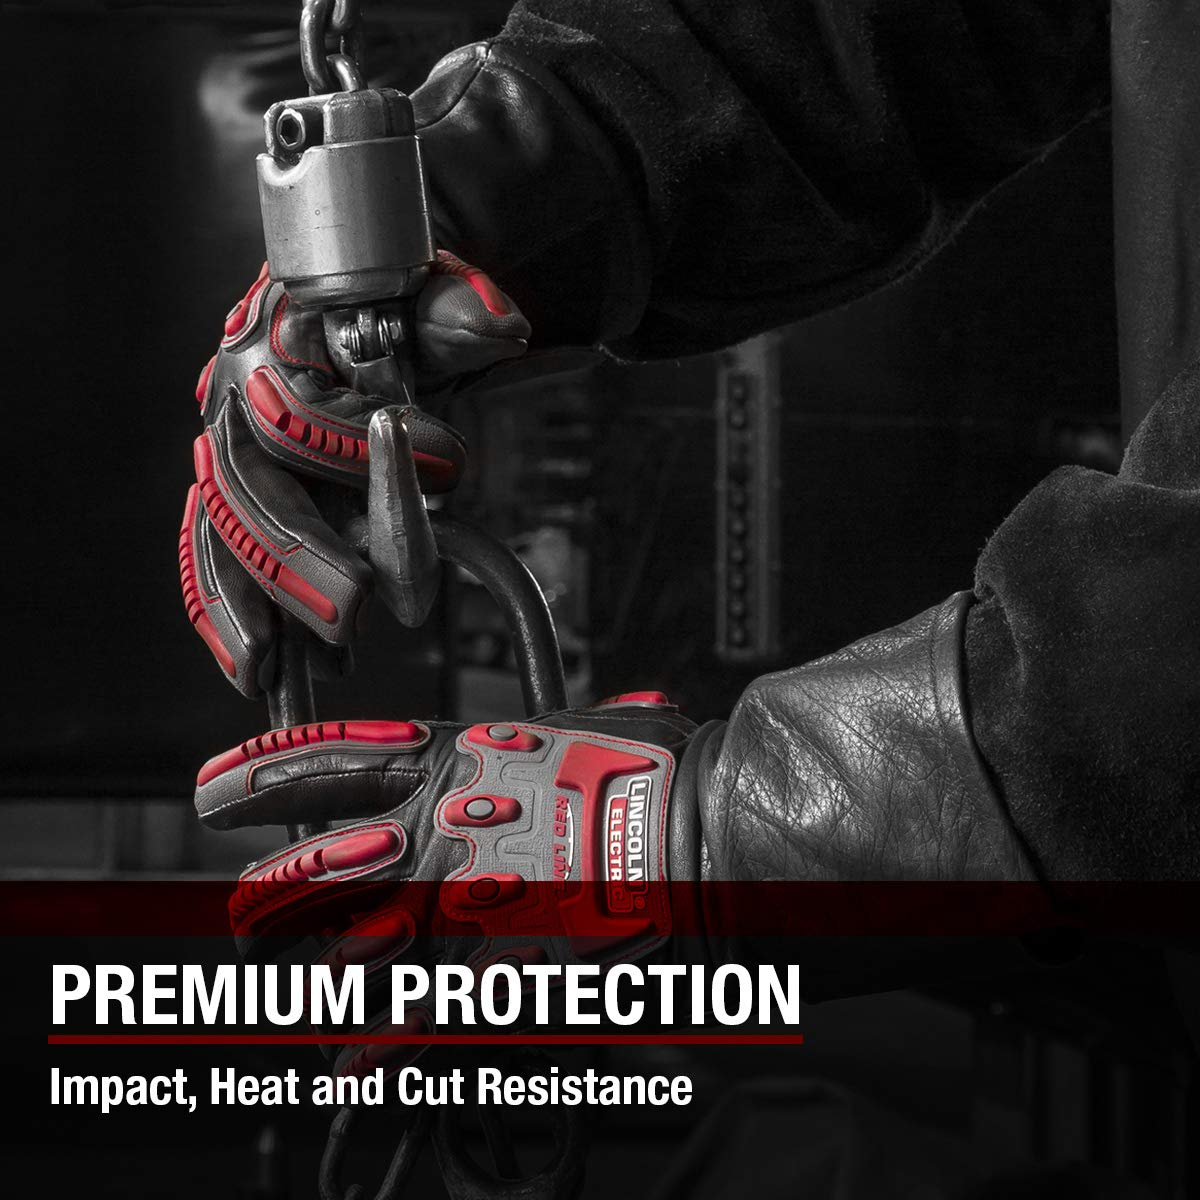 Lincoln Electric Roll Cage Welding/Rigging Gloves | Impact Resistant | Black Grain Leather | by Lincoln Electric (Image #4)